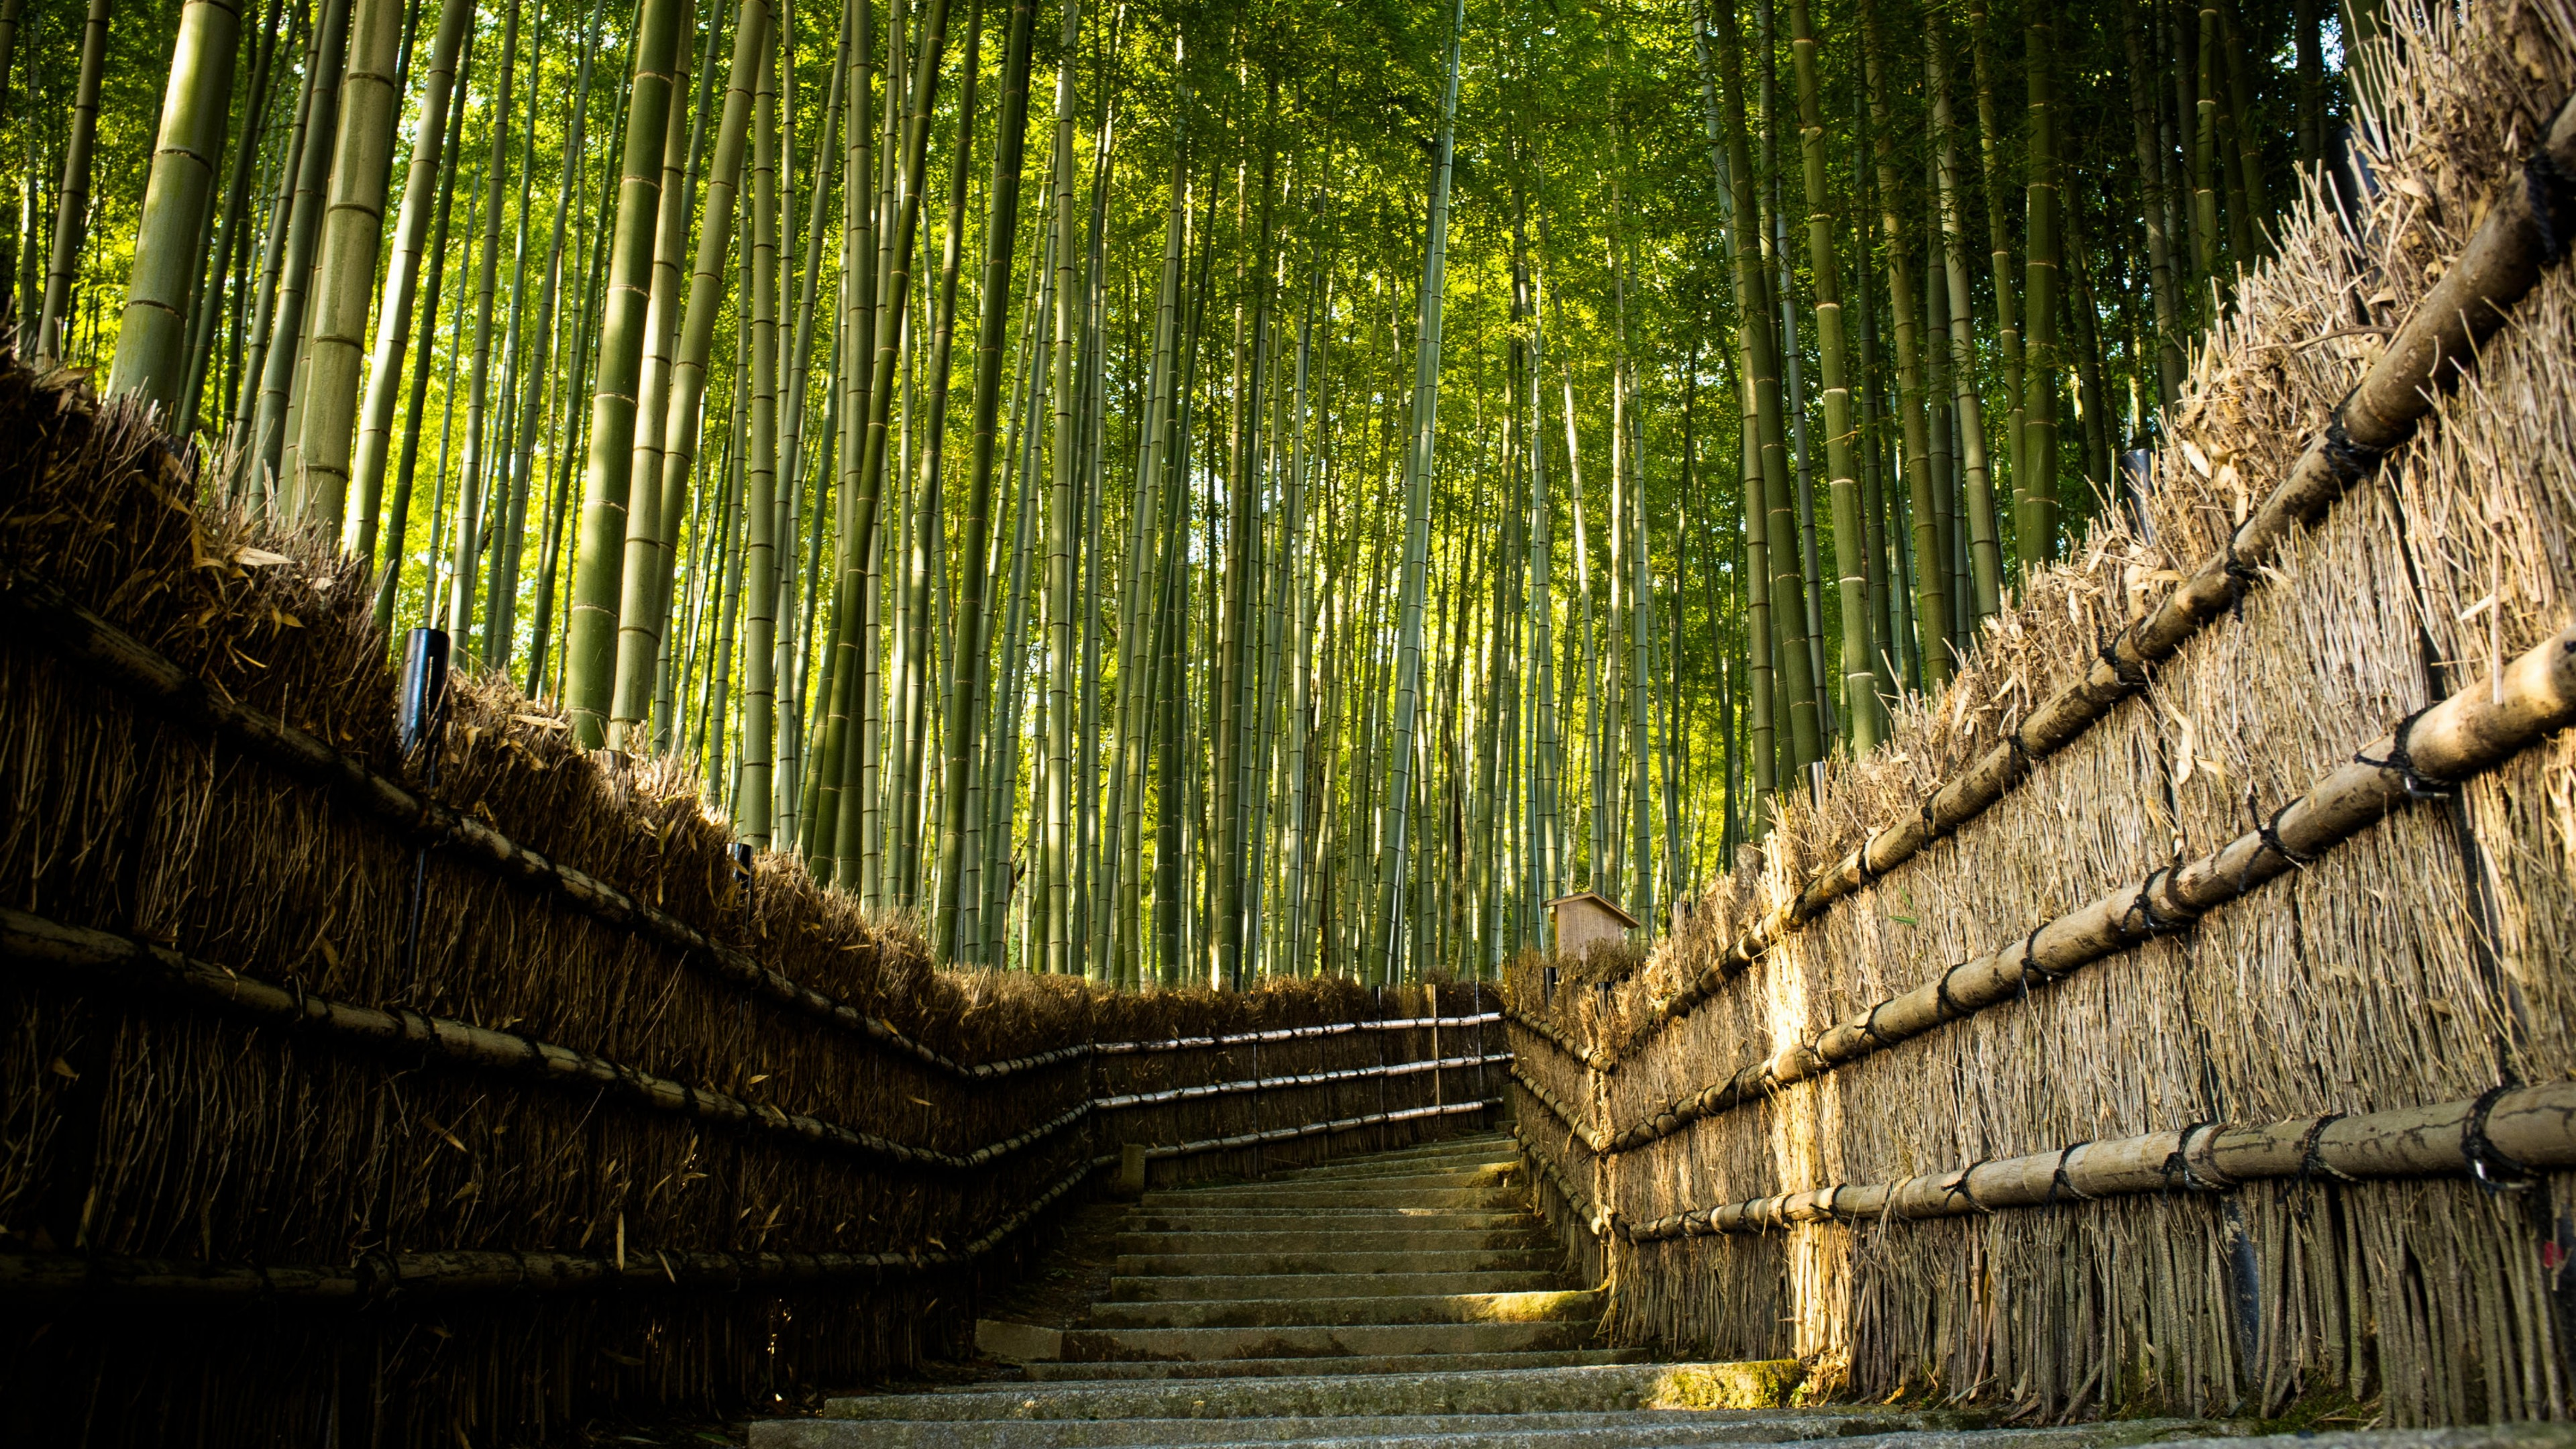 Bamboo Forest Path 4K UltraHD Wallpaper - backiee